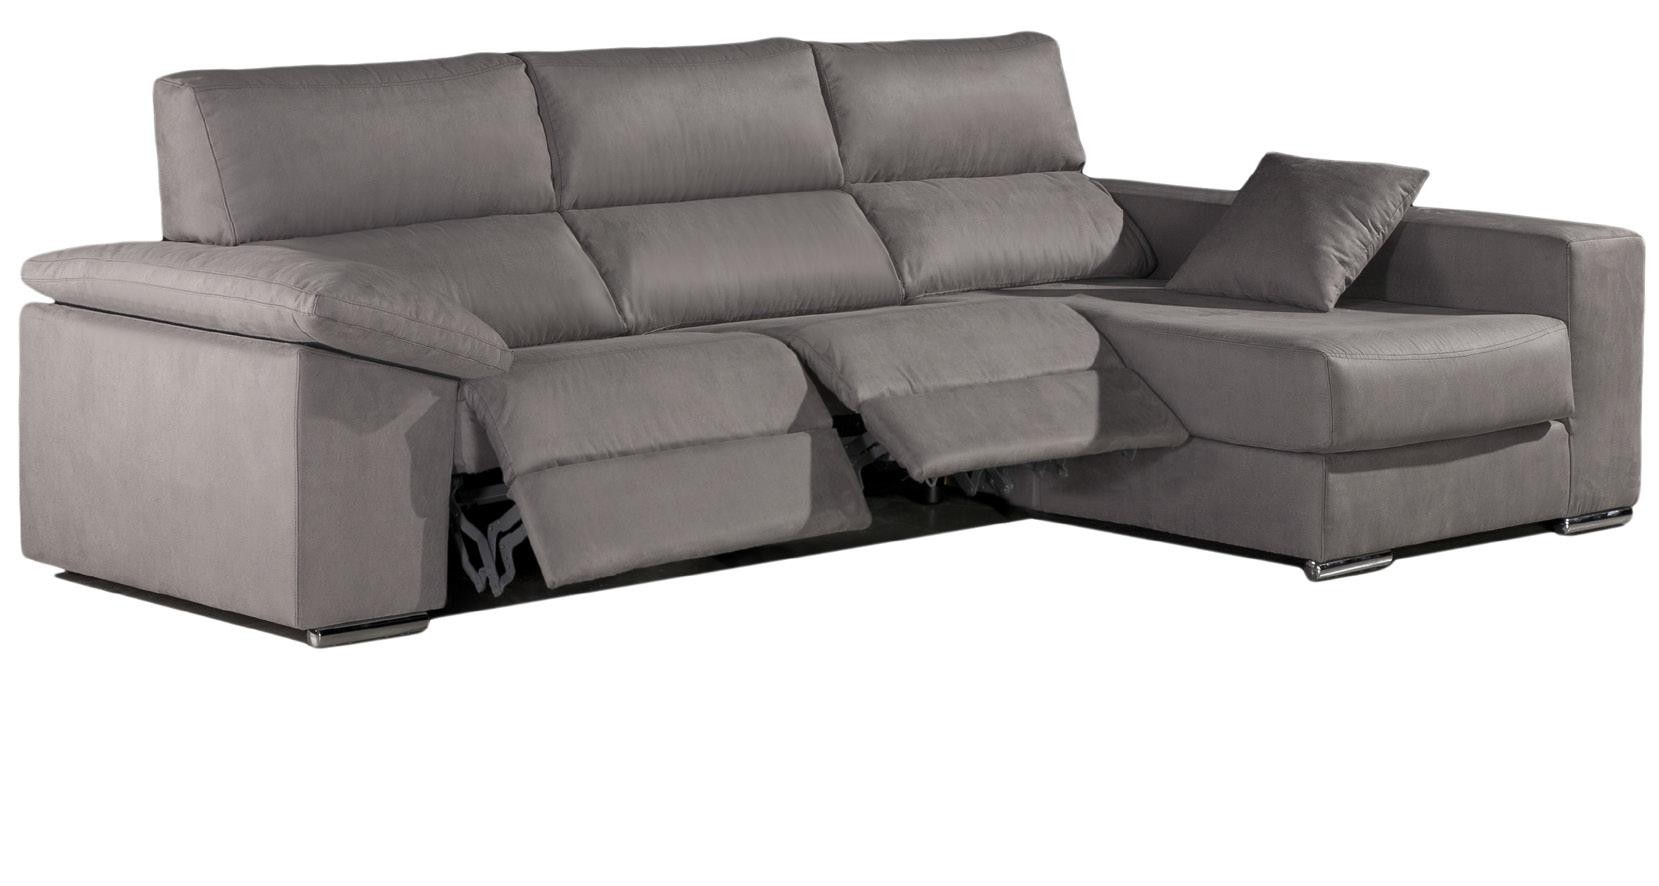 Chaise Longue Sofa Thesofa